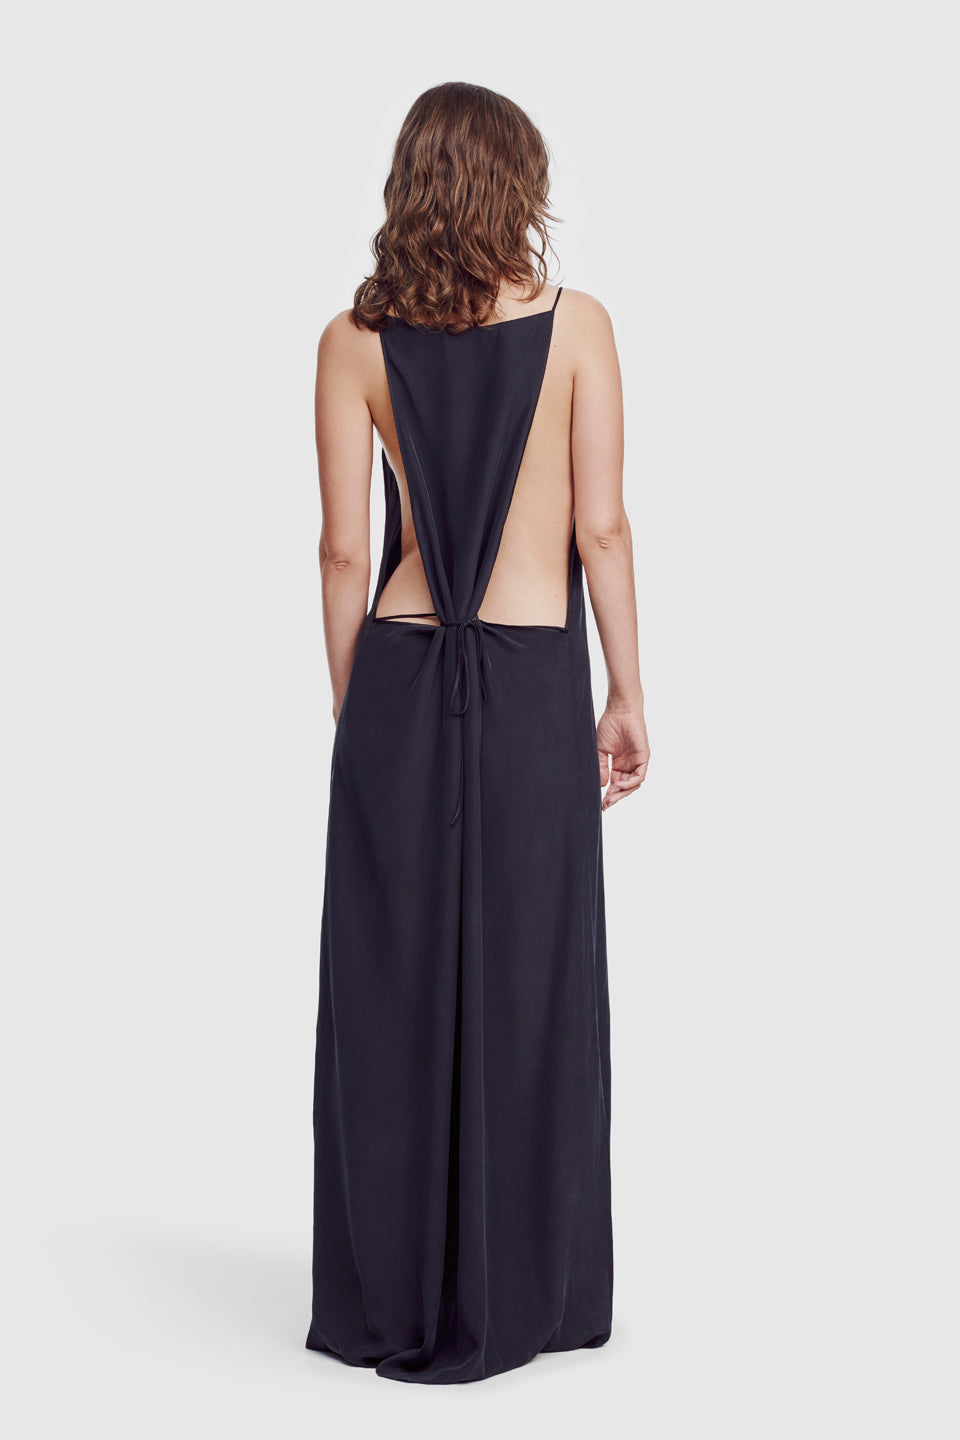 Amour Square Neck Long Slip Black - Kiki de Montparnasse